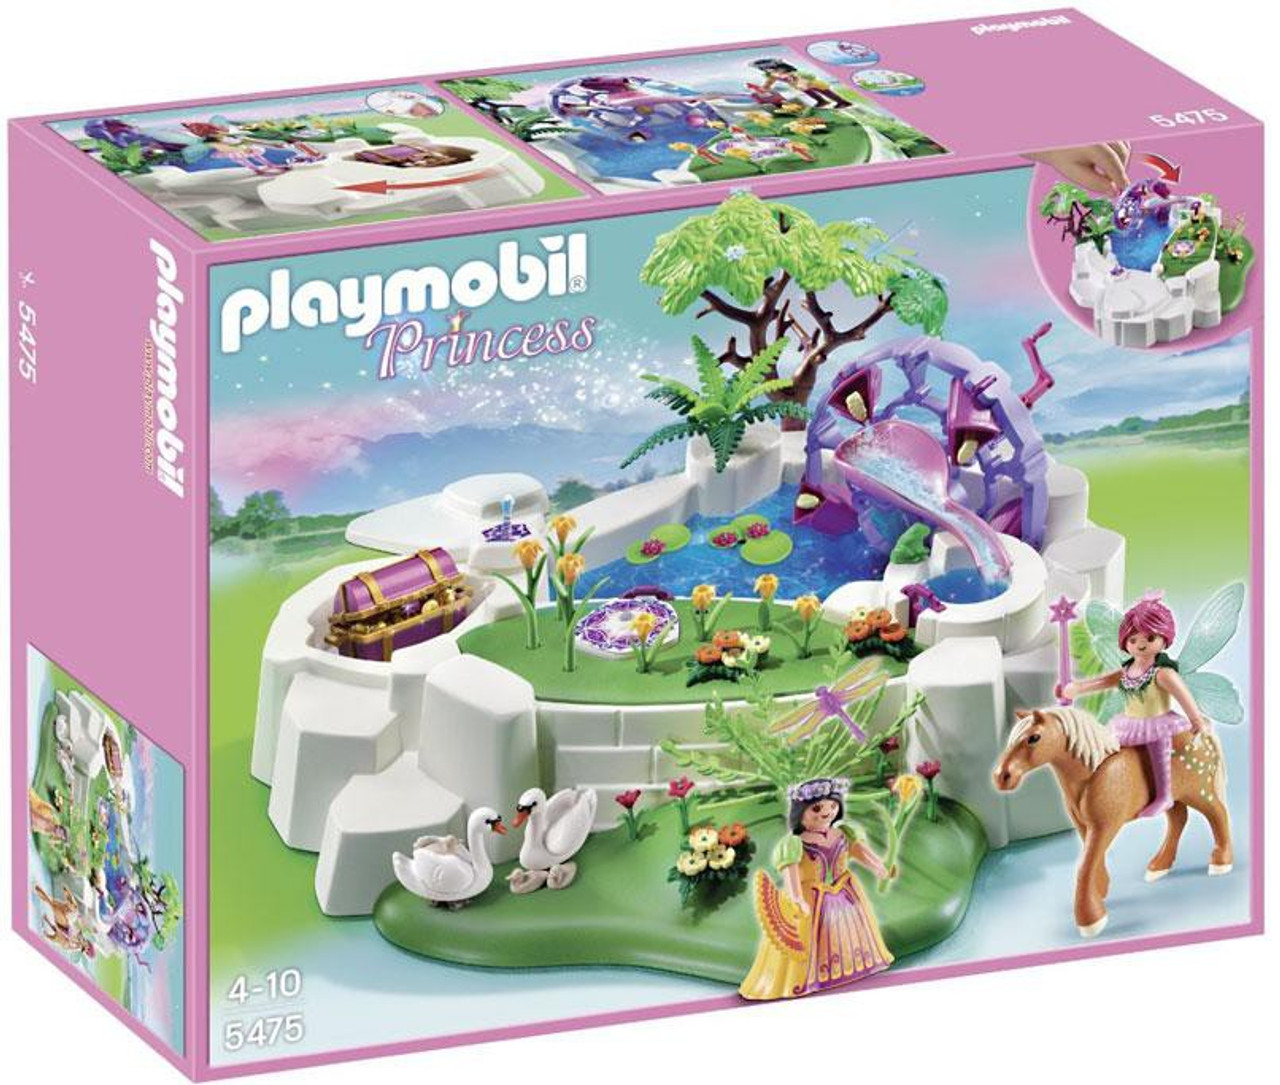 Playmobil Princess Magic Crystal Lake Set 5475 Toywiz